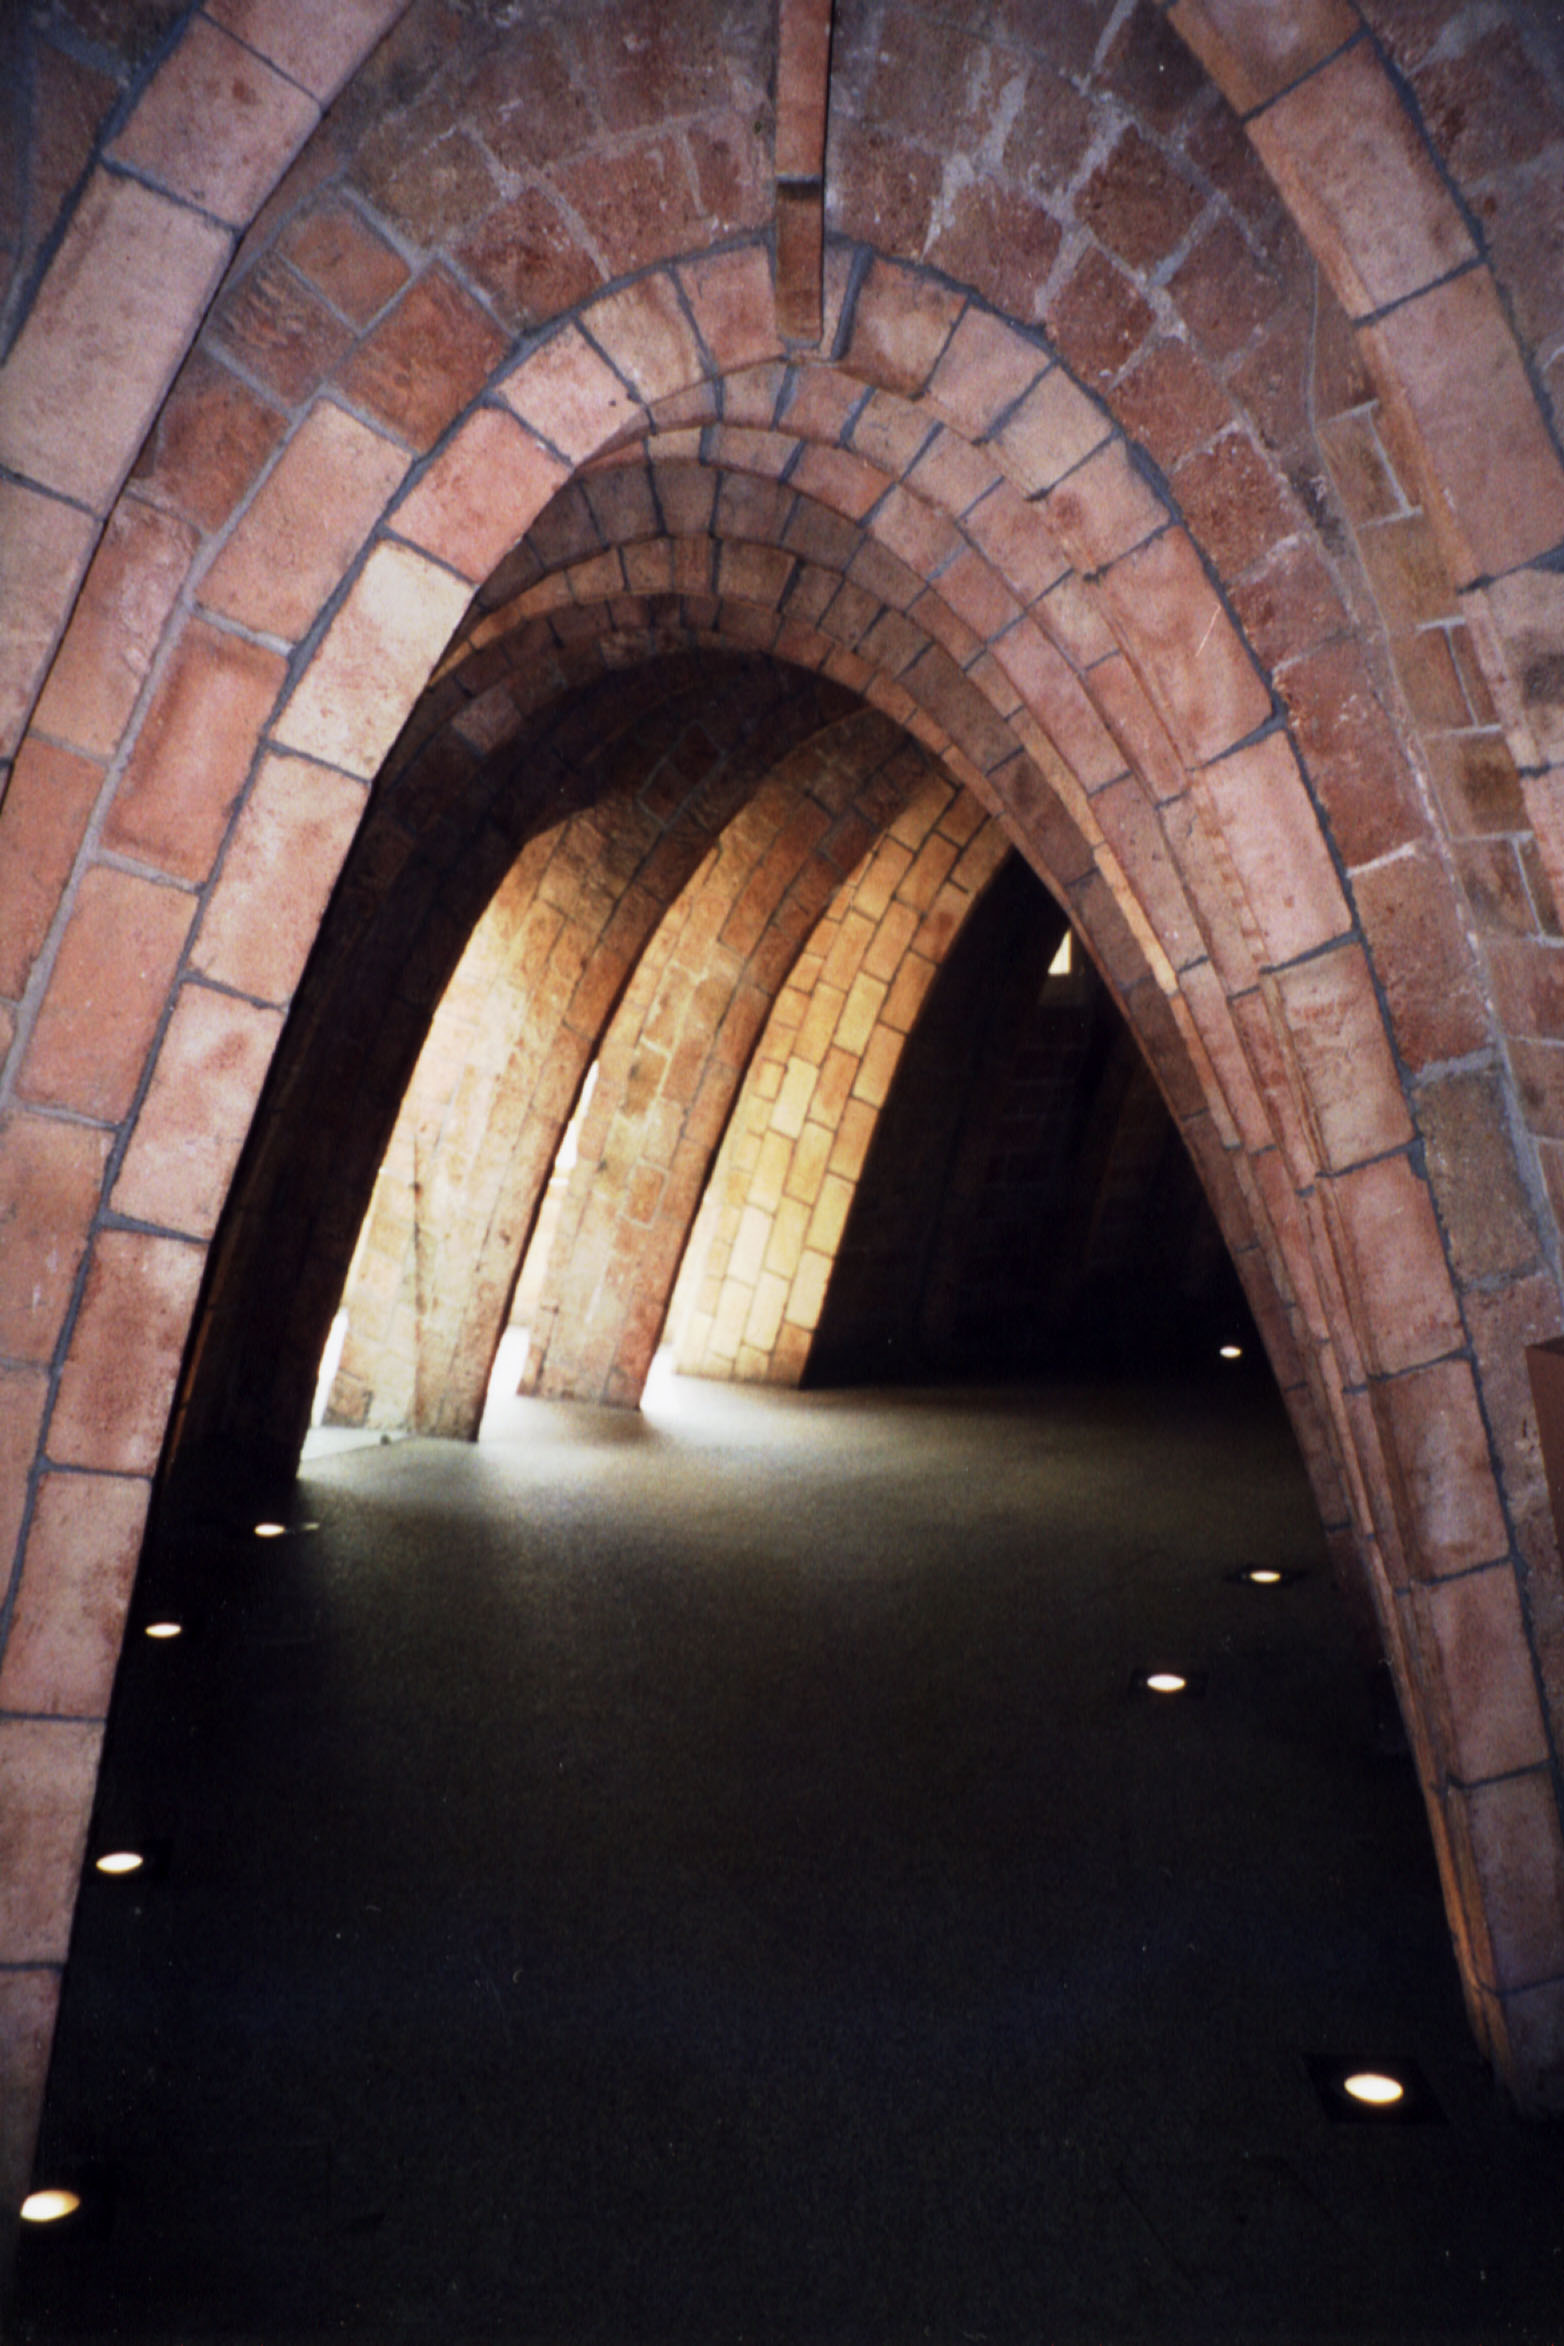 Catnary Curve derives the form of this arch that acts in compression